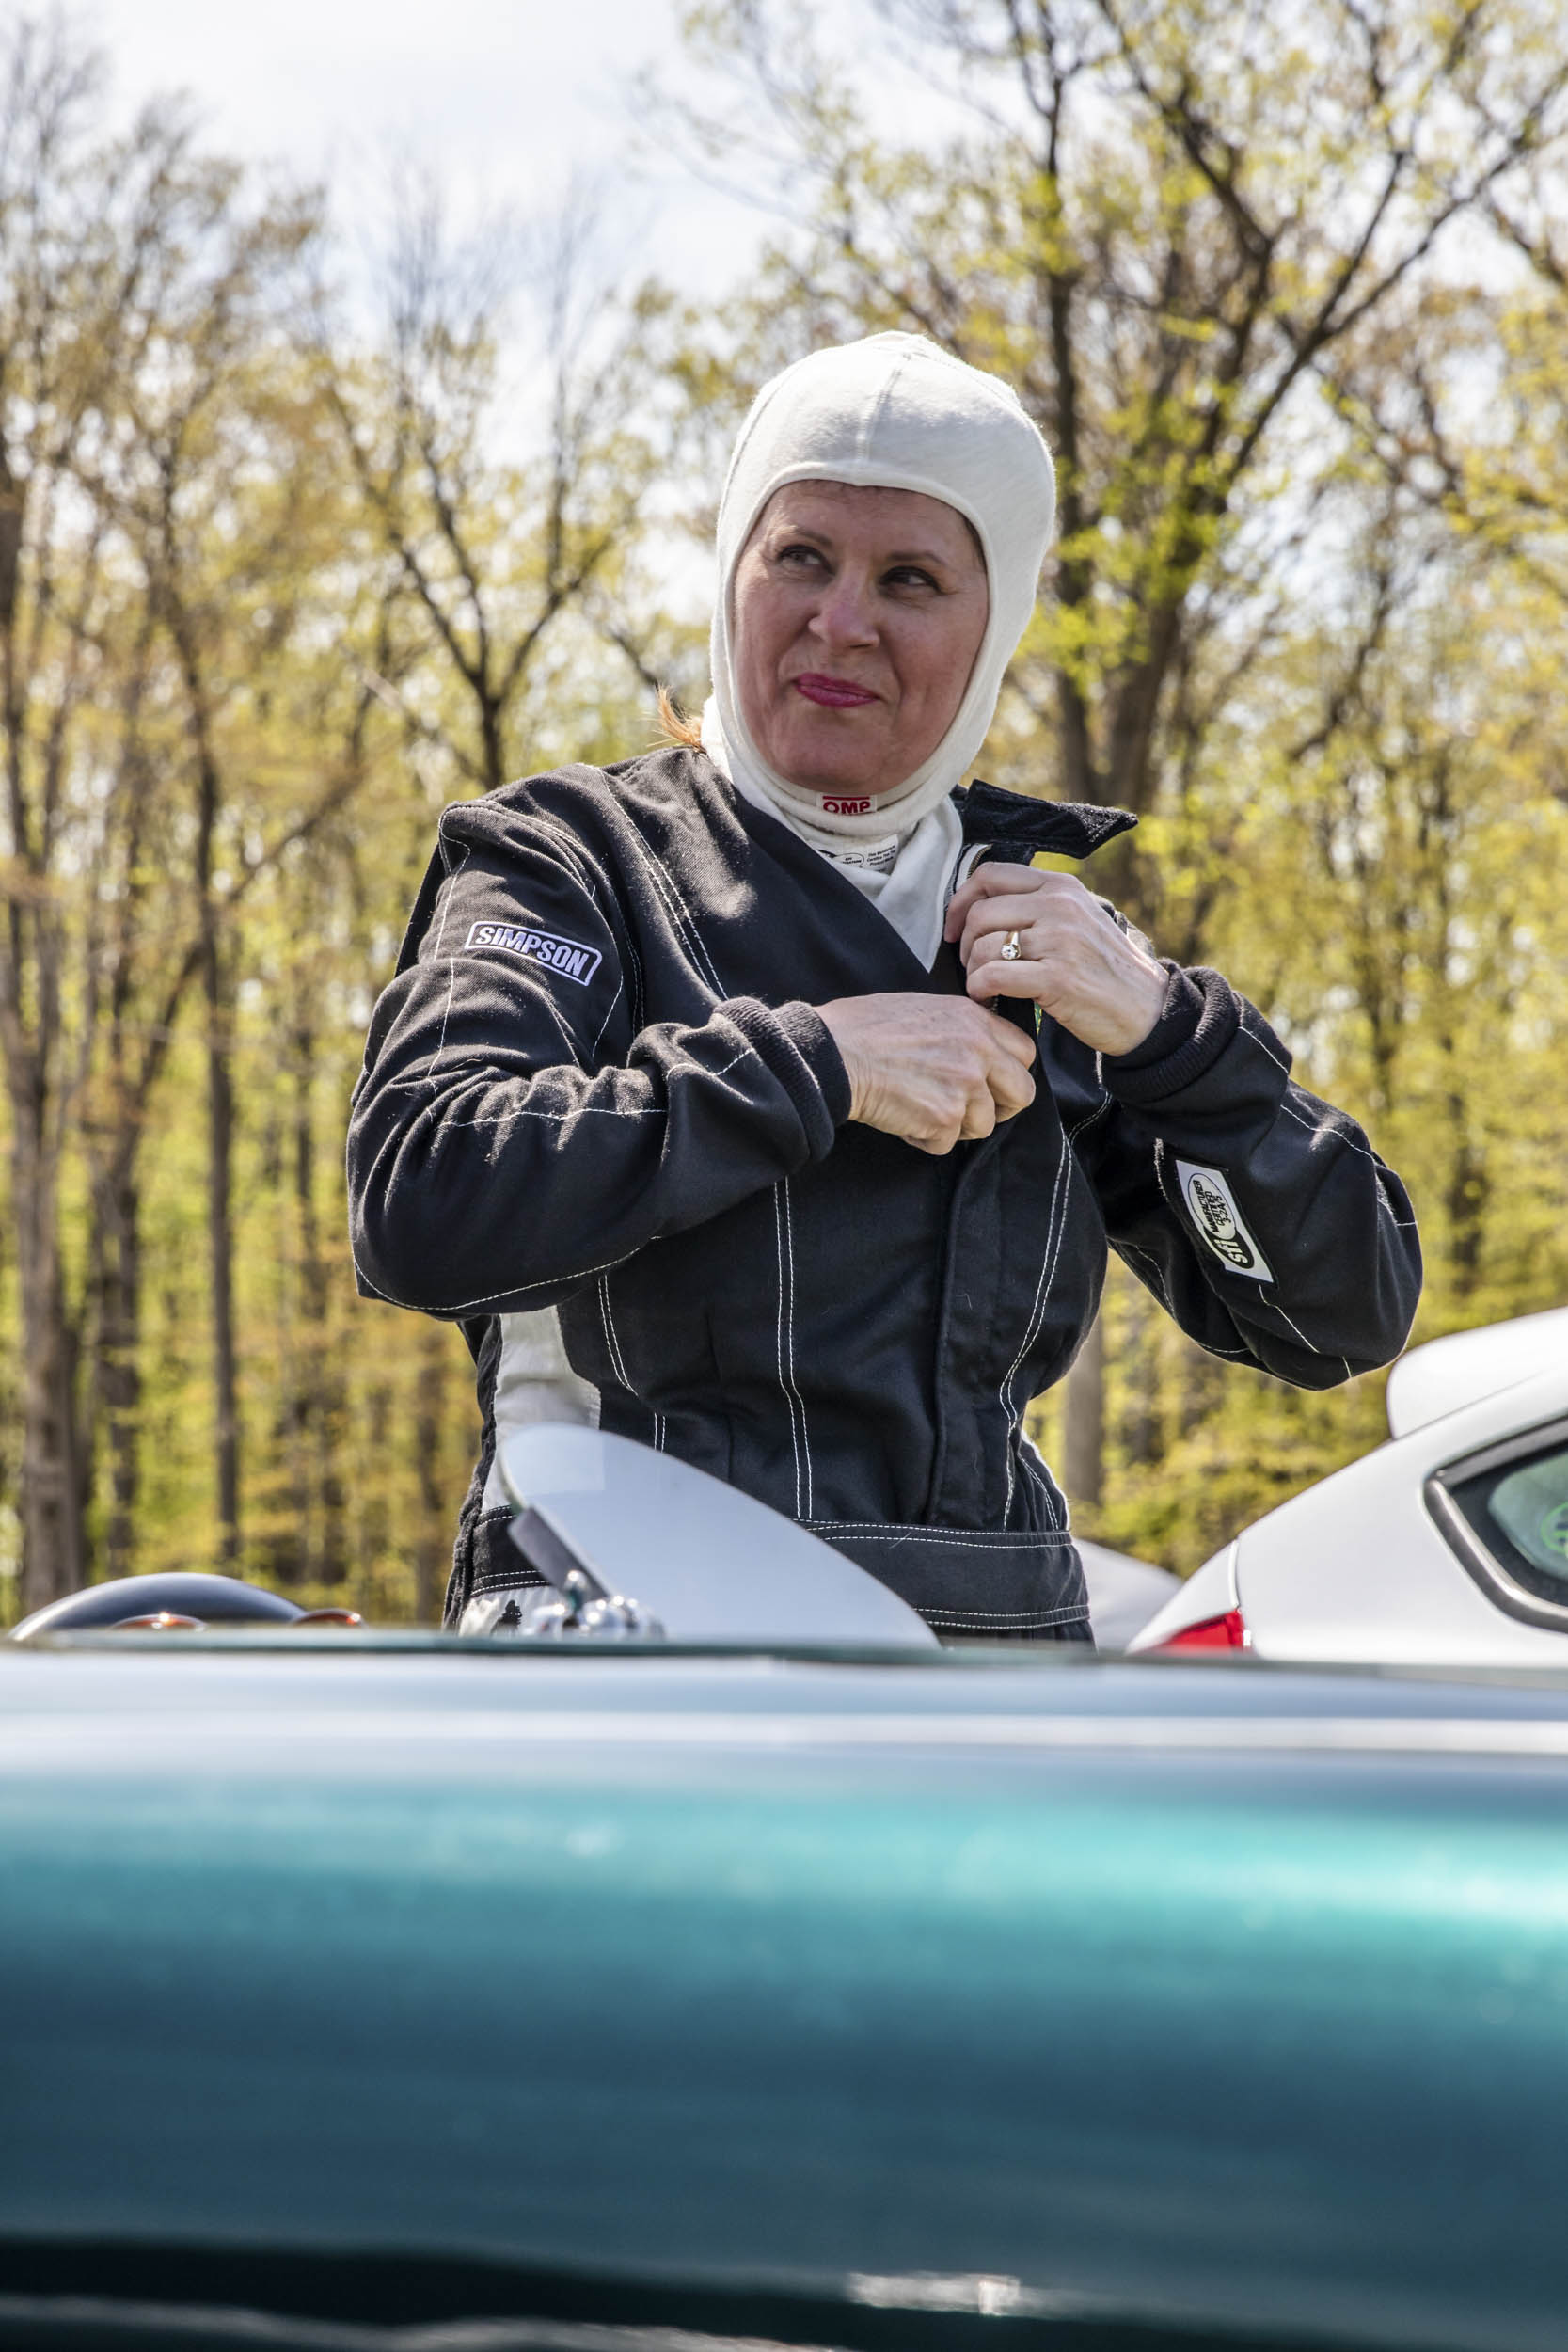 Eileen Wetzel is a dental assistant, but on weekends, she's hooked by the challenge of driving her Austin- Healey as fast as it can go.